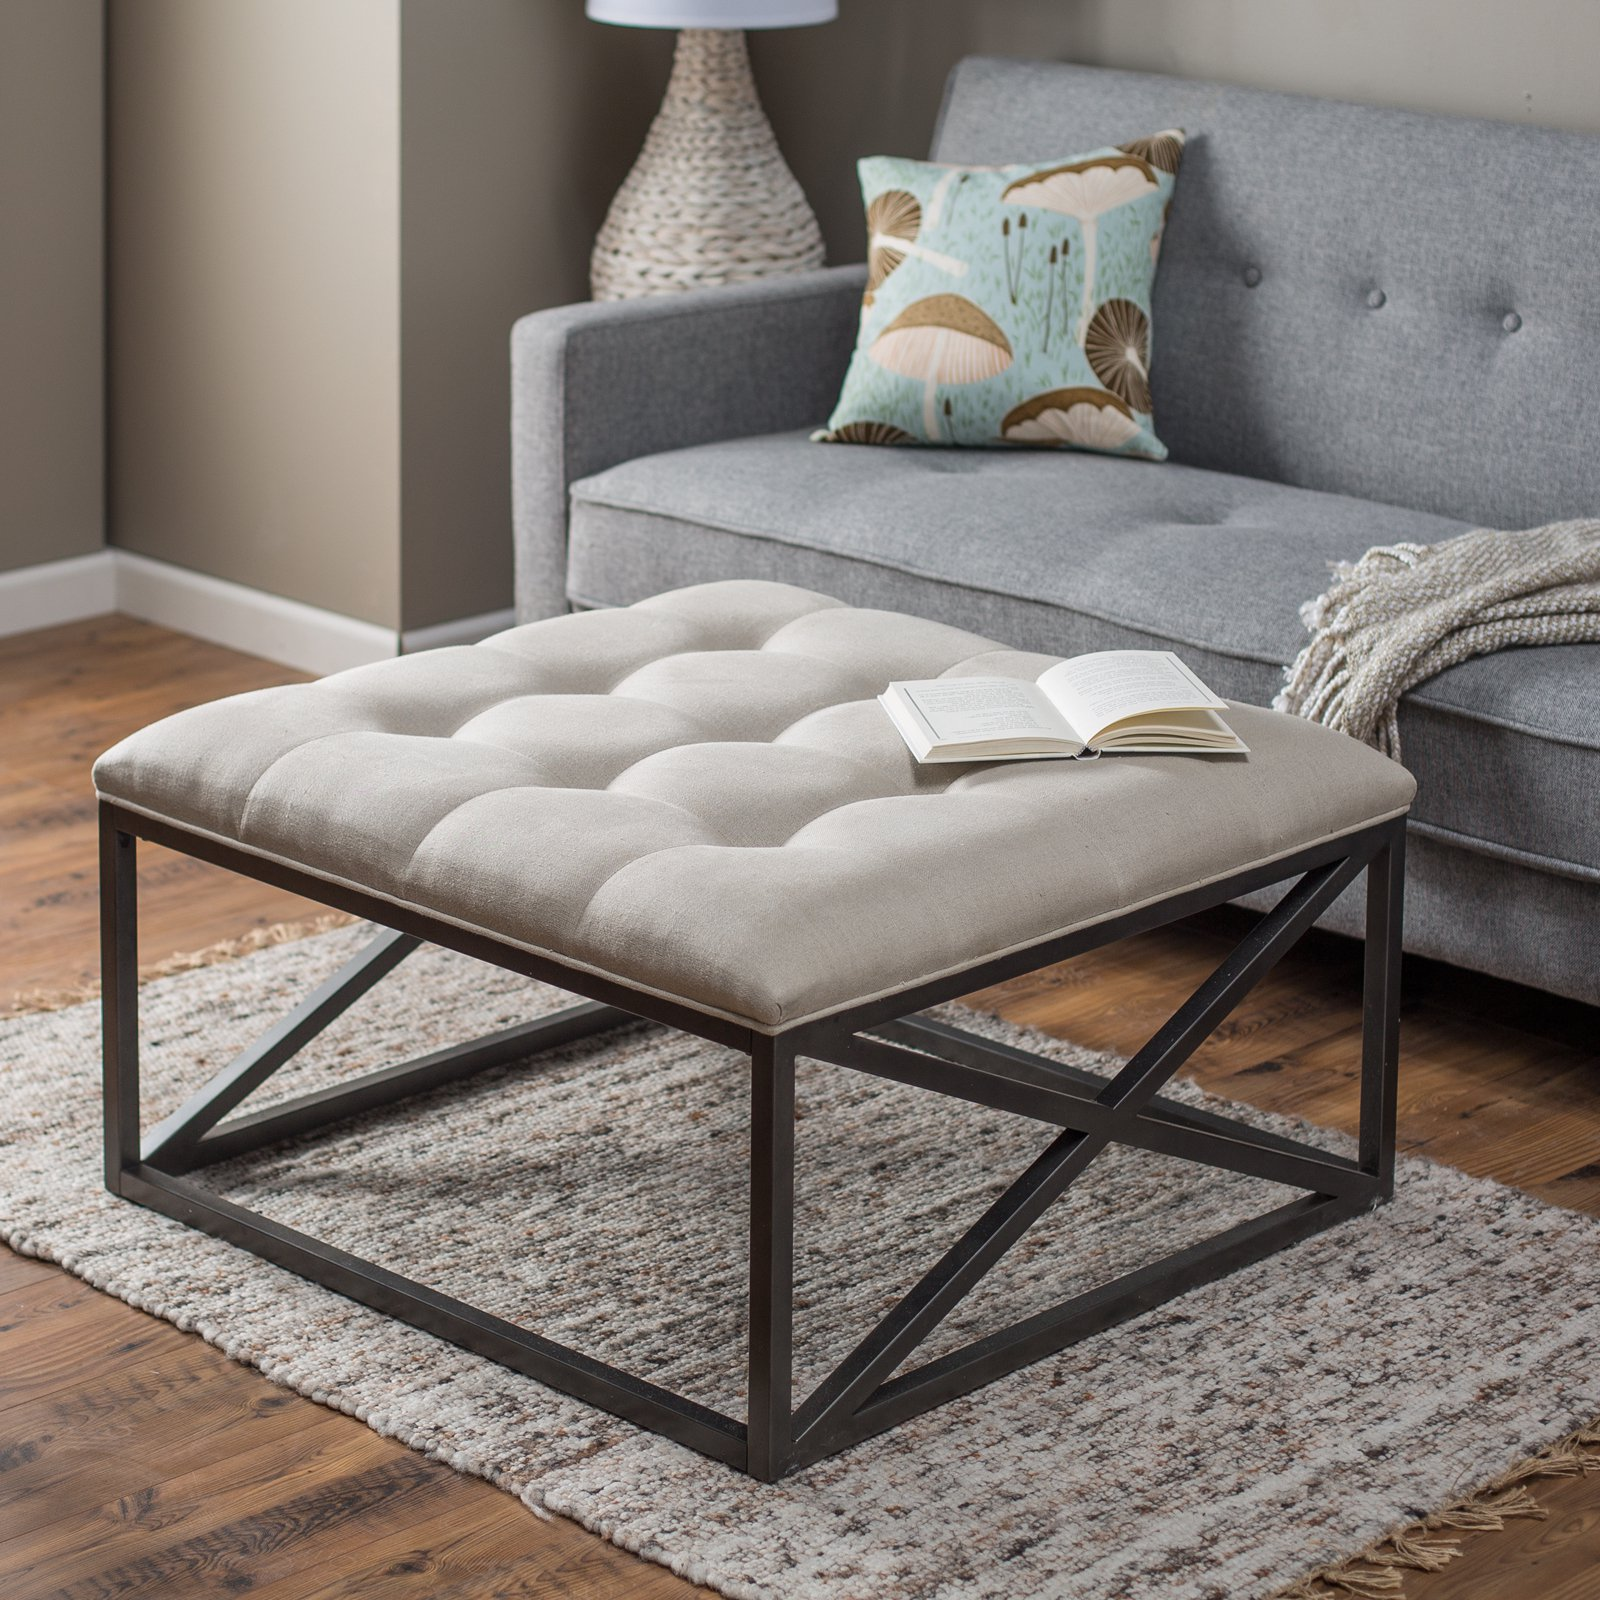 Exceptionnel Belham Living Grayson Tufted Coffee Table Ottoman